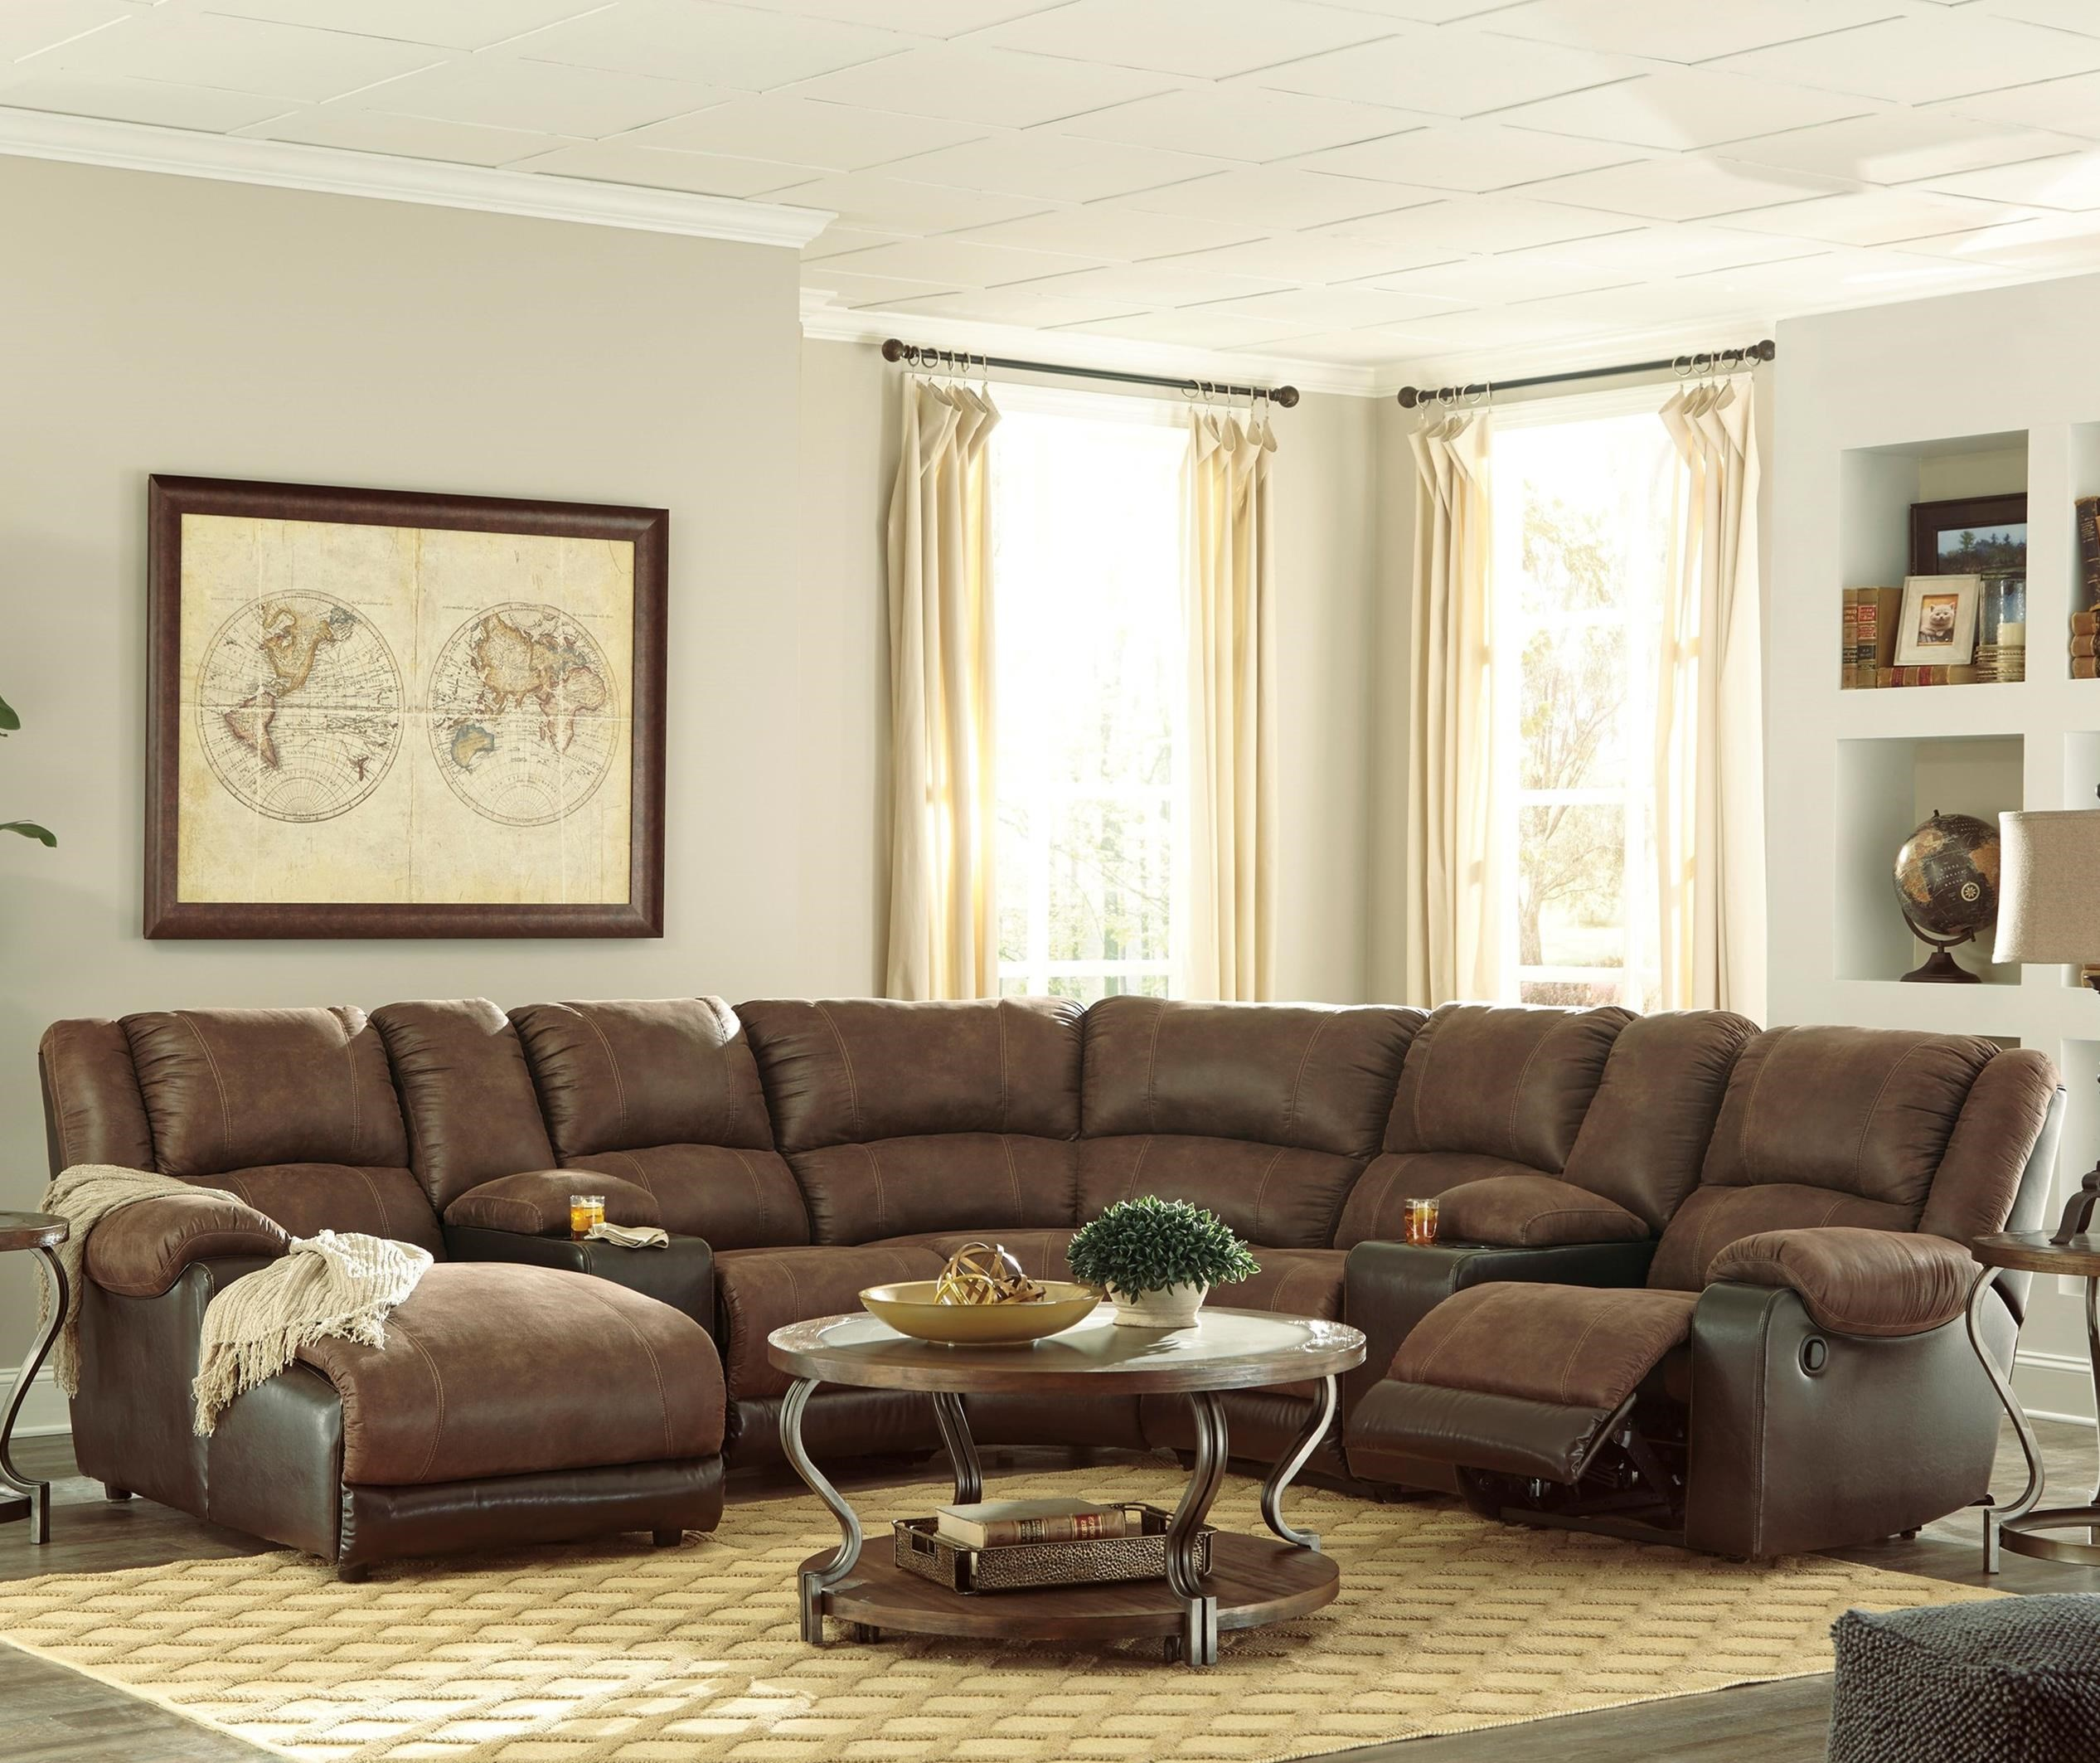 chaise sofas providence right jody new boston ri couch item sectional lsg ma couches and collections rotmans england piece worcester charcoal with